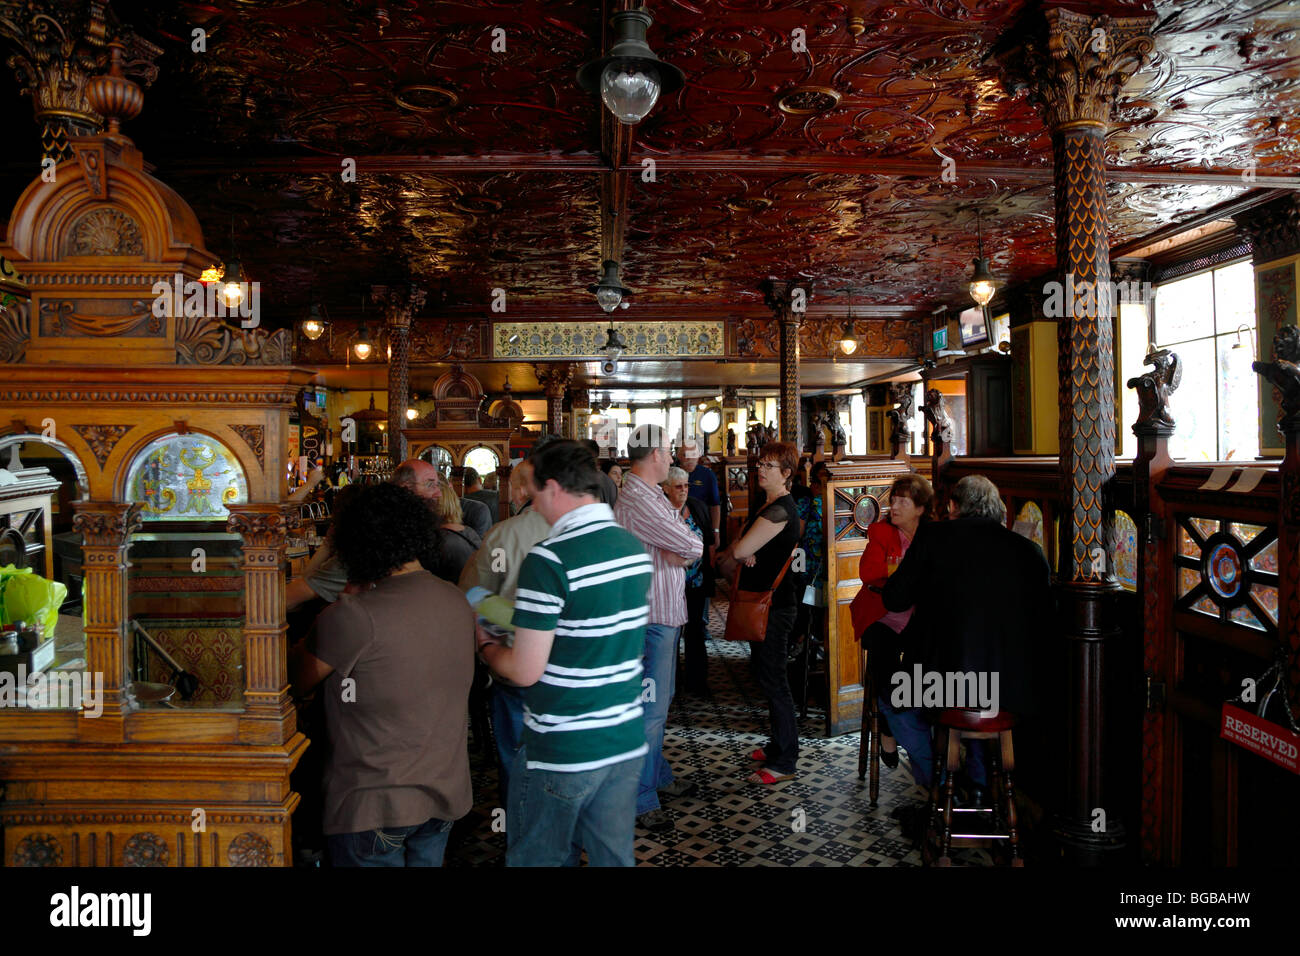 Ireland, North, Belfast, Great Victoria Street, The Crown Bar Liquor Saloon. Built in 1826 it features gas lamps - Stock Image